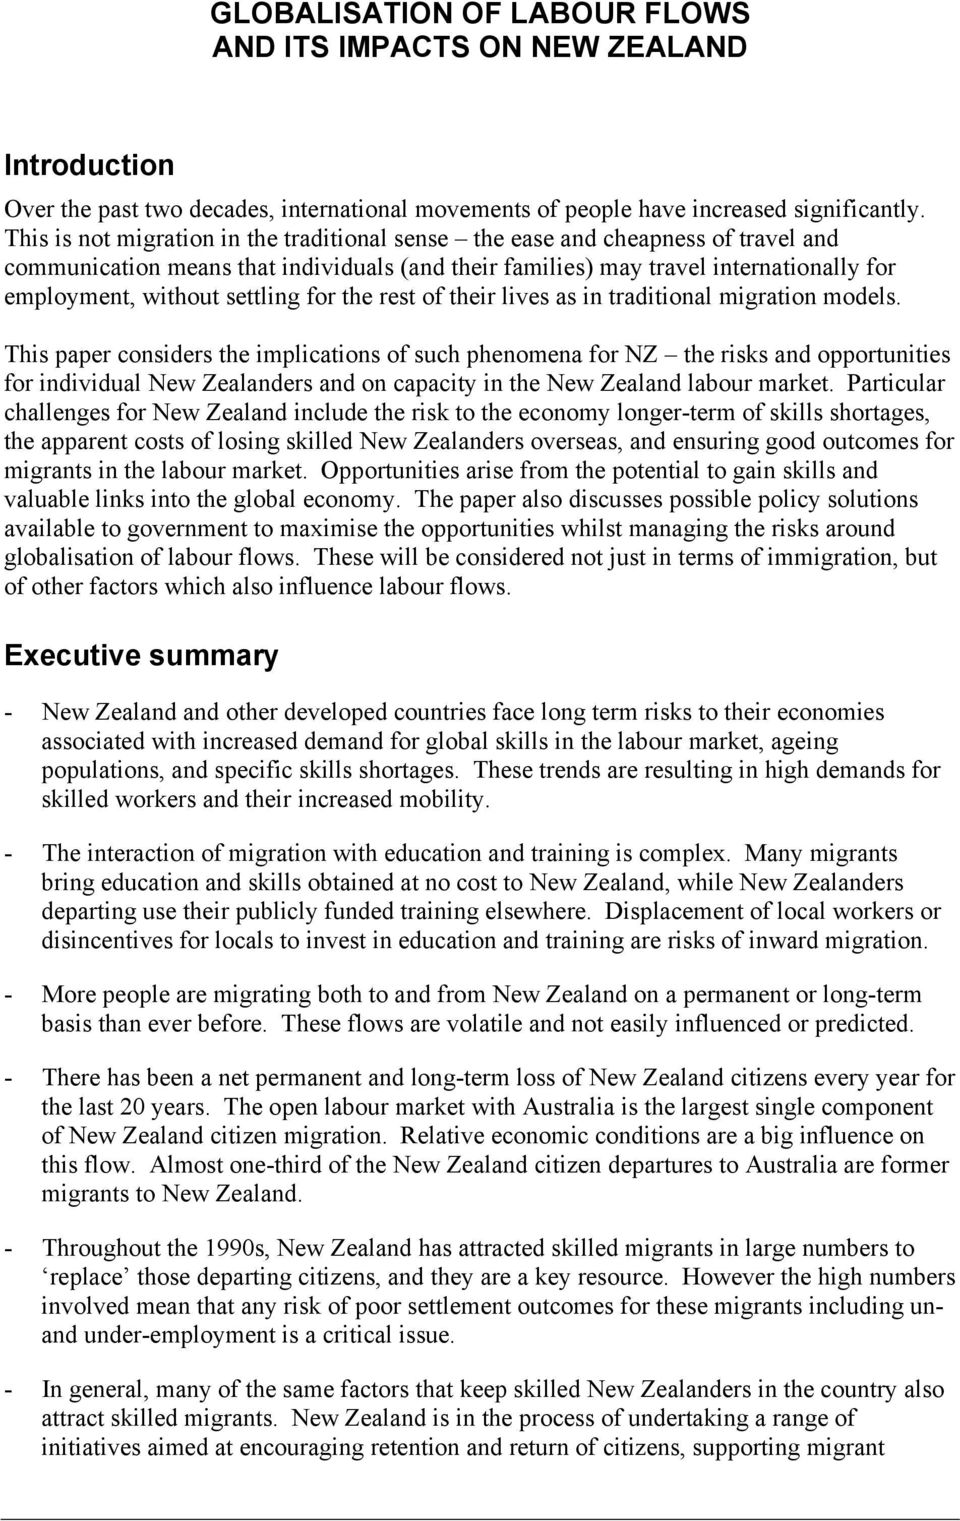 Labour rights in New Zealand